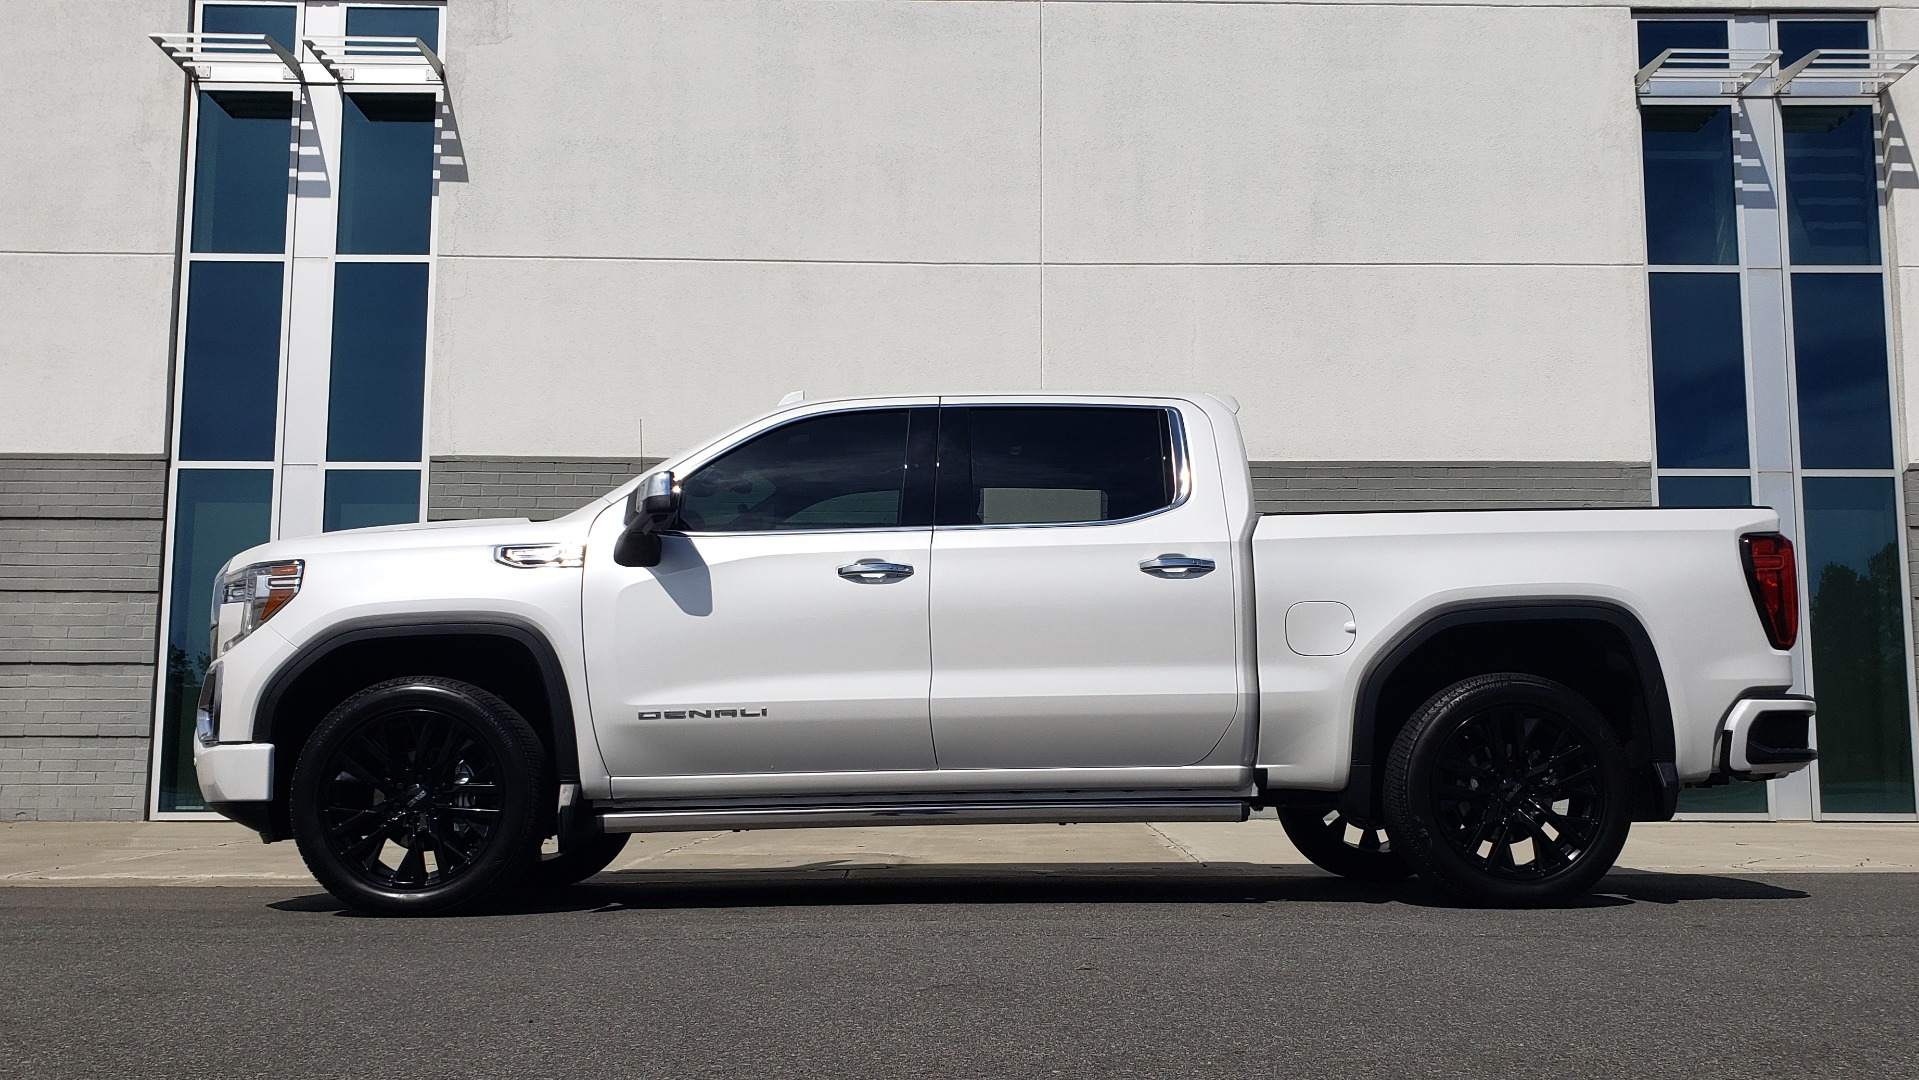 Used 2020 GMC SIERRA 1500 DENALI 4X4 CREWCAB 6.2L V8 / TECH / NAV / SUNROOF / DRVR ALERT II for sale Sold at Formula Imports in Charlotte NC 28227 4